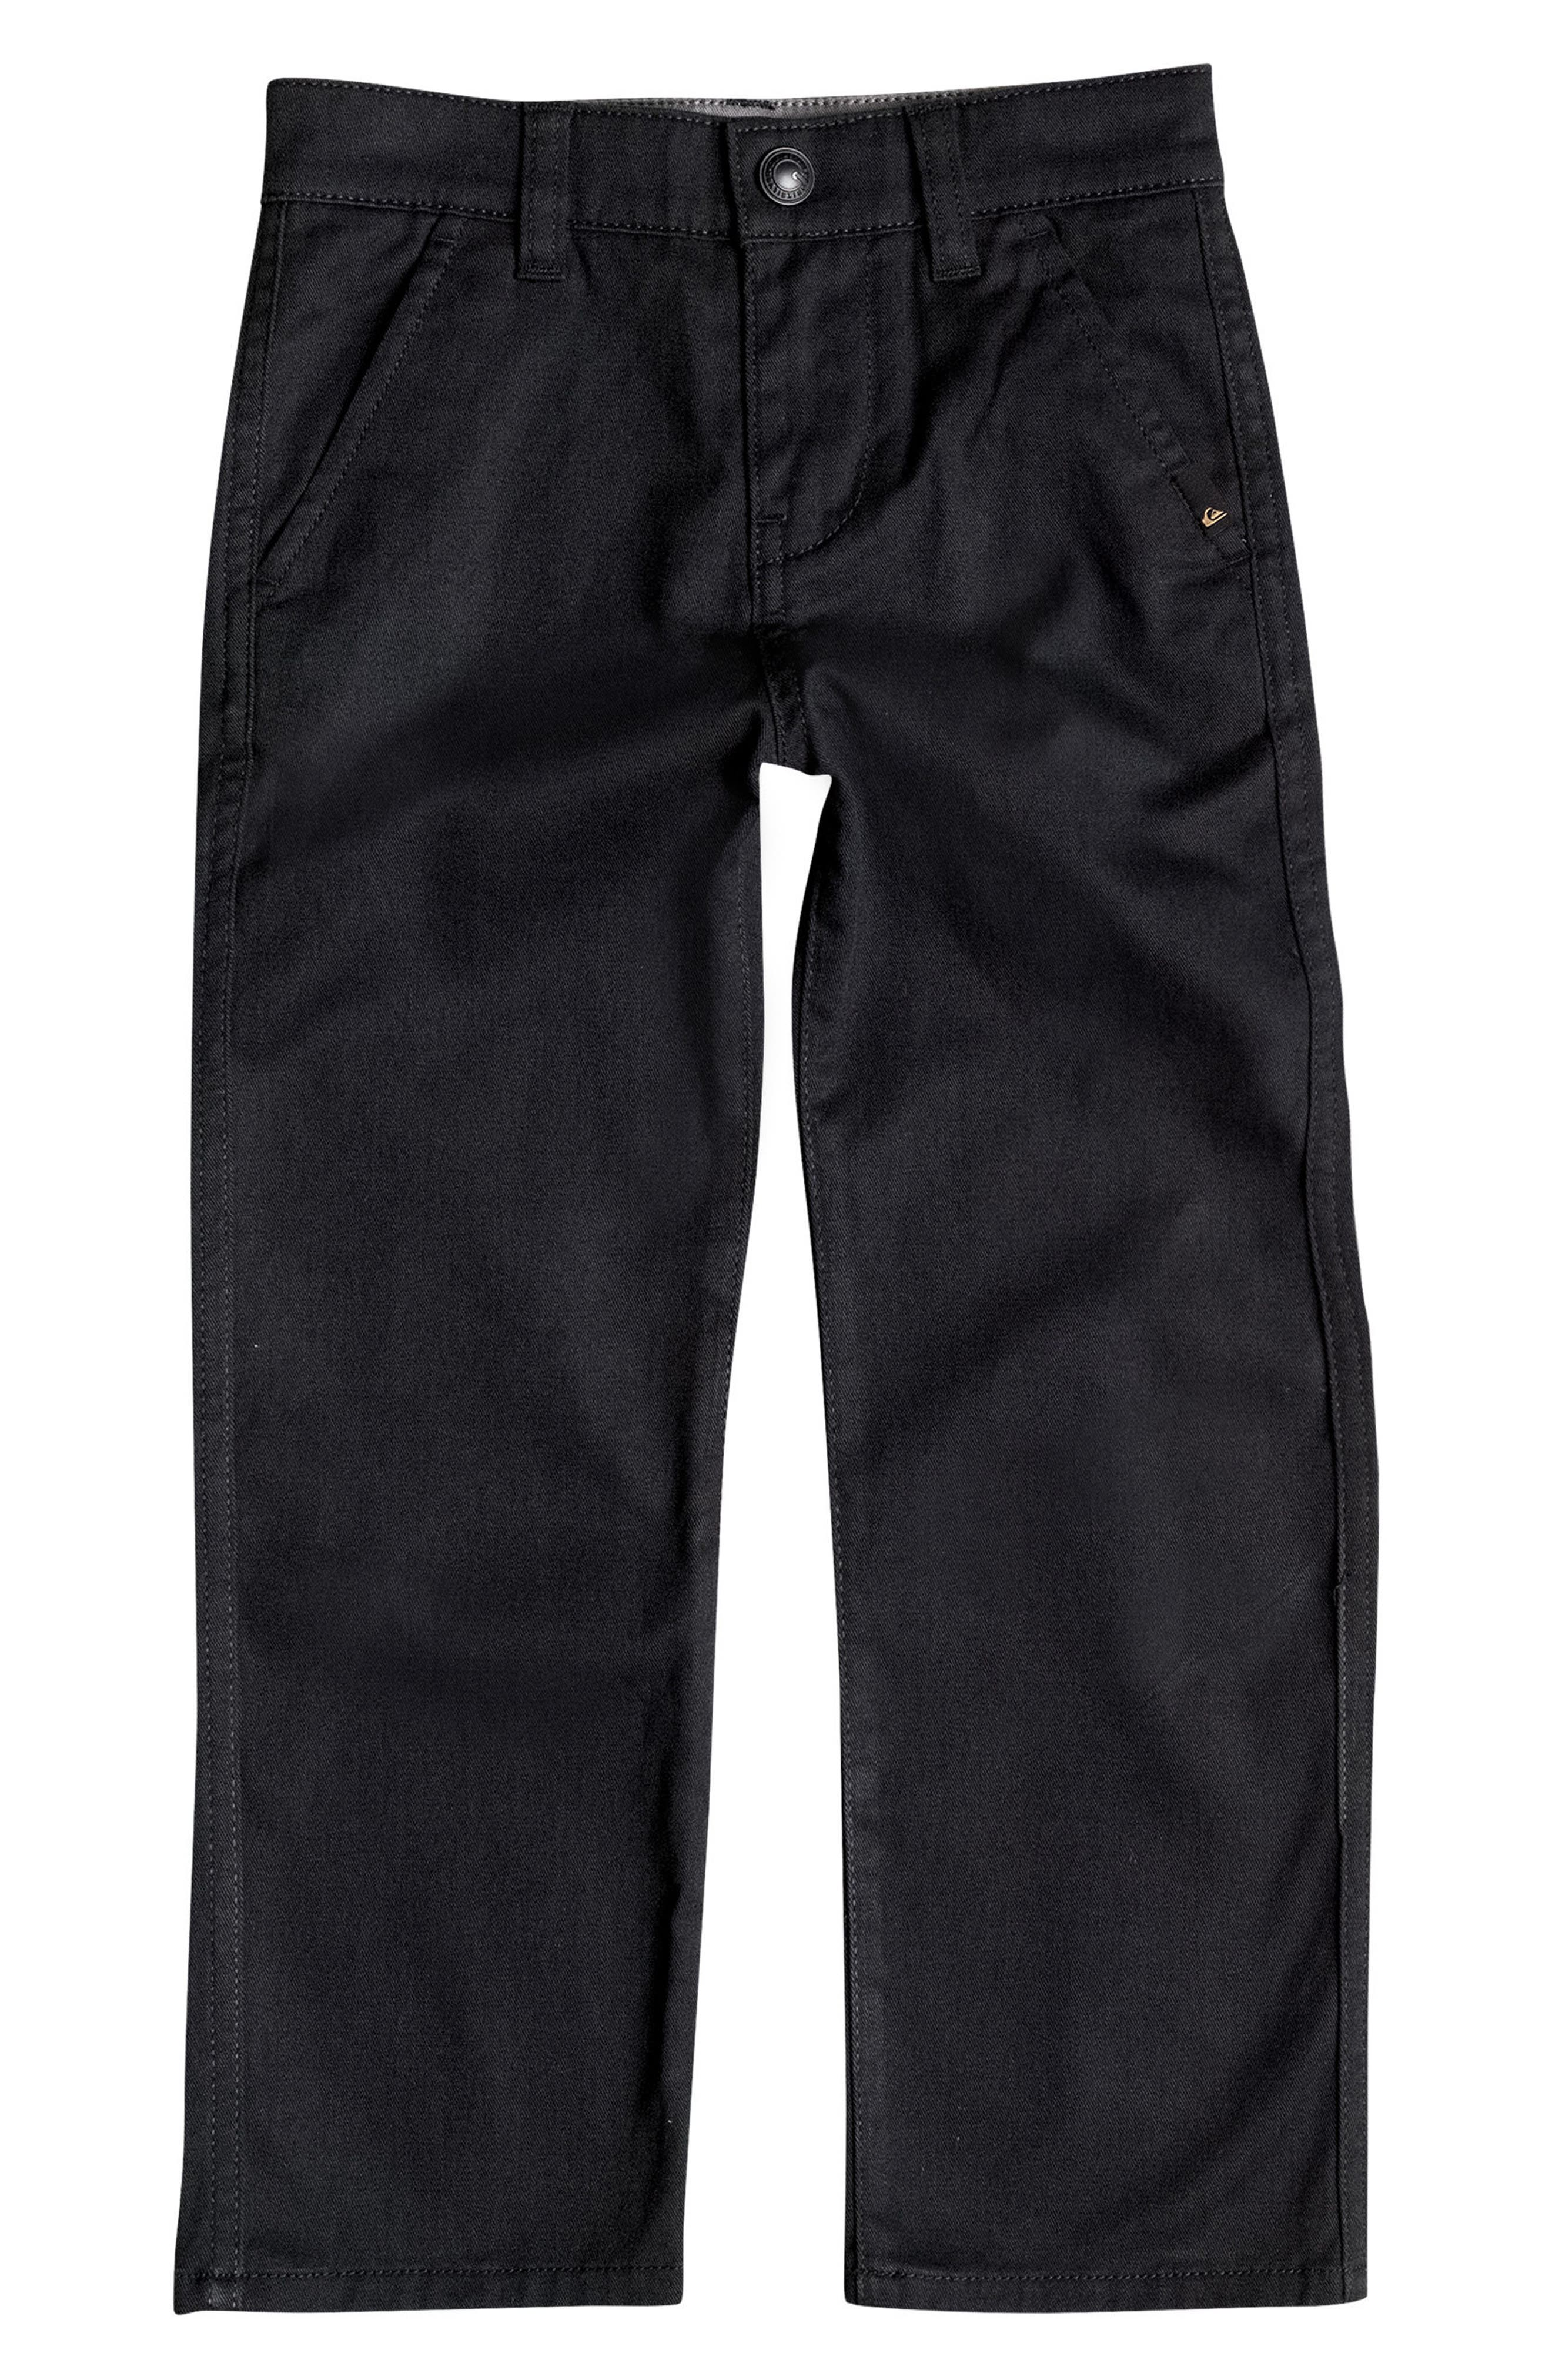 Everyday Union Pants,                             Main thumbnail 1, color,                             002